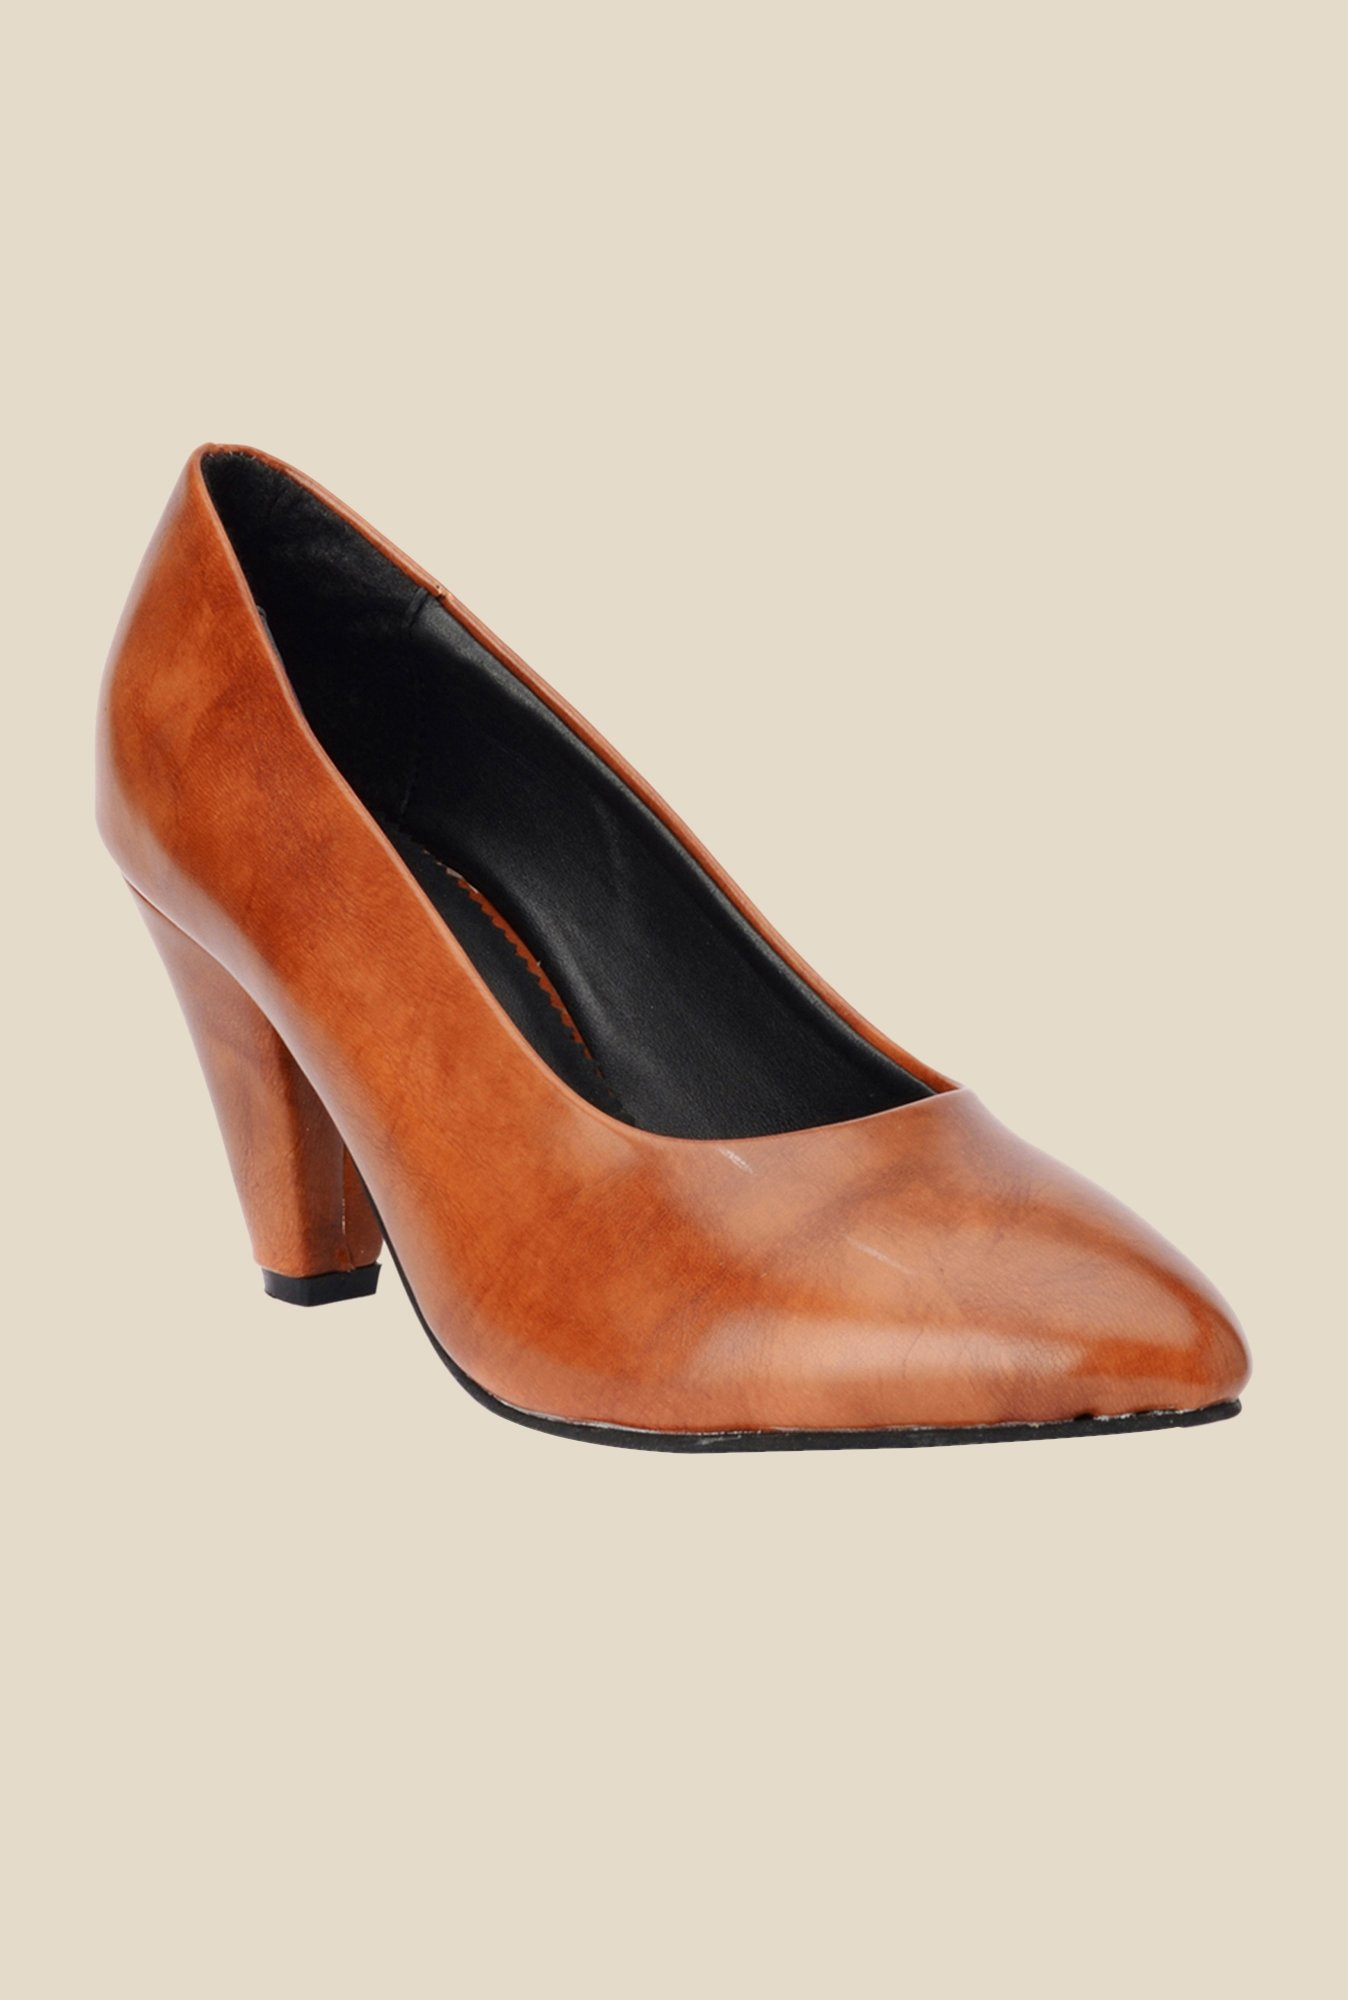 Bruno Manetti Tan Stiletto Heeled Pumps